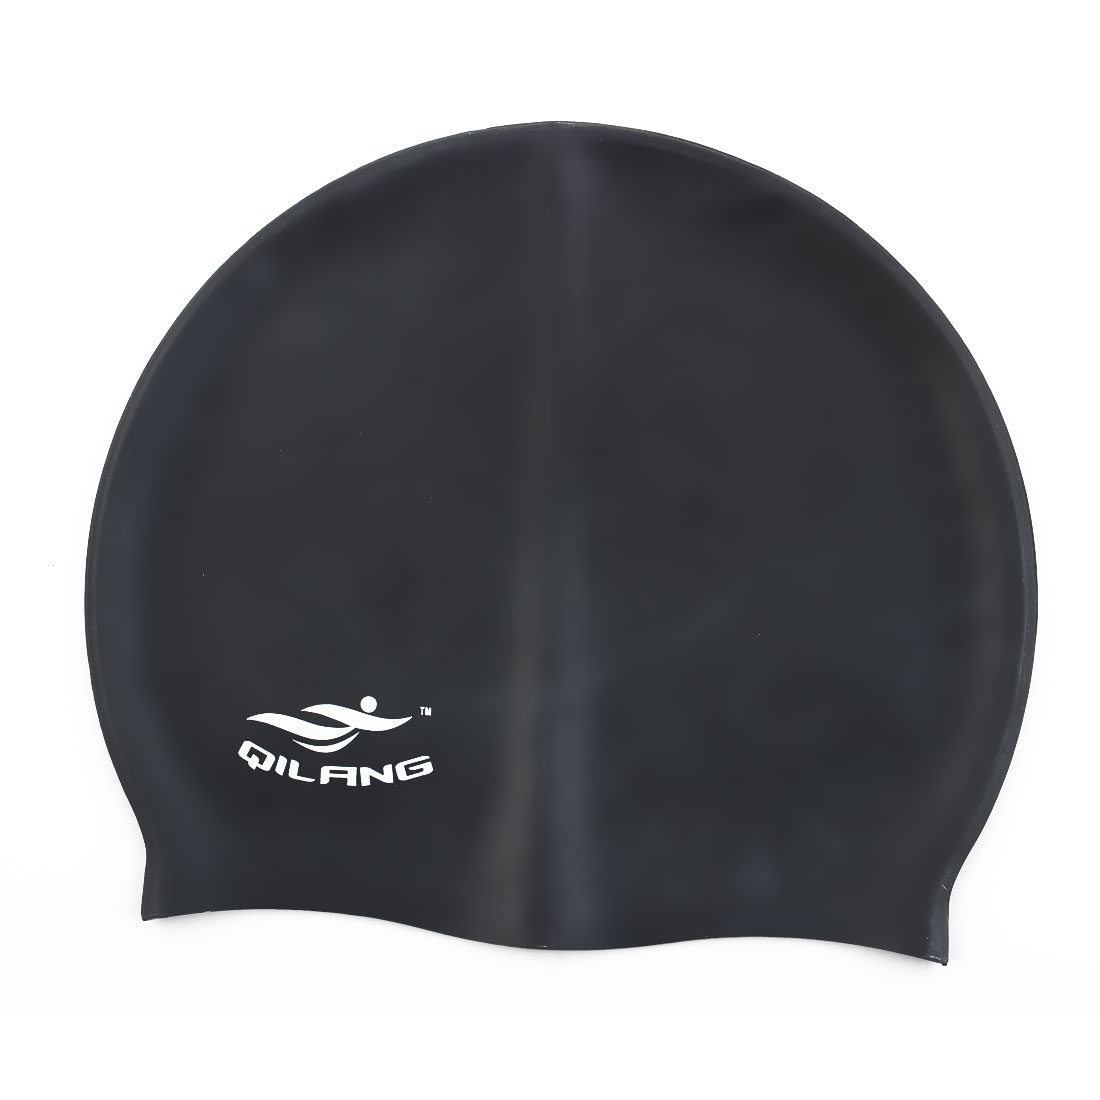 Unisex Silicone Dome Shaped Non-slip Stretchable Swimming Cap Portable Bathing Hat Black